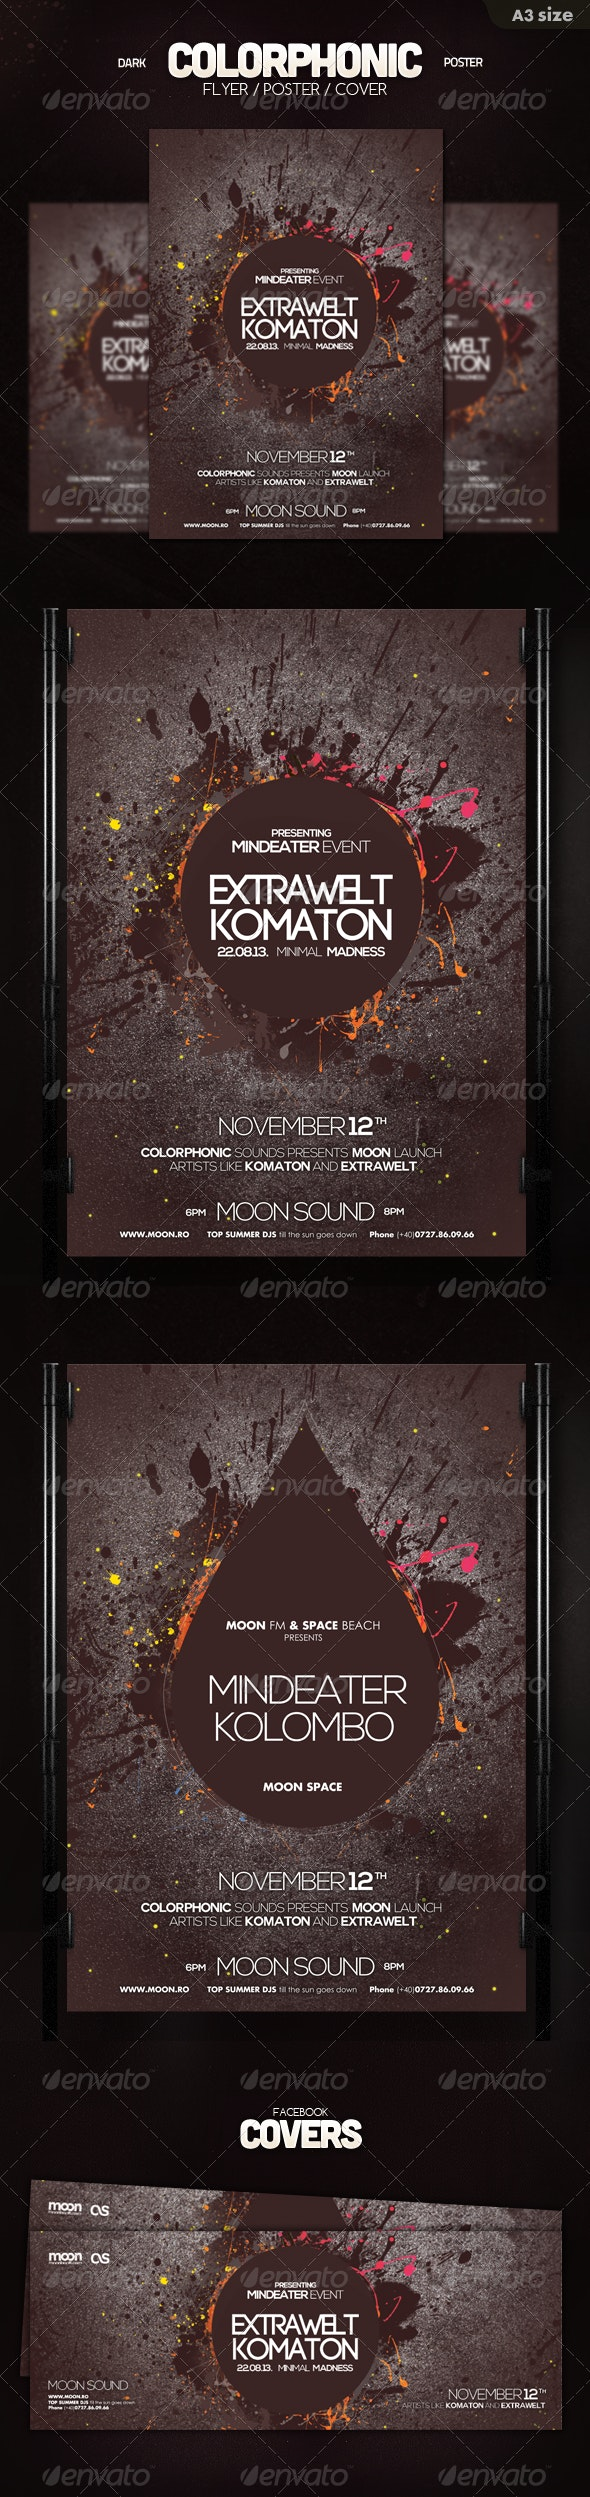 Dark Colorphonic Poster - Clubs & Parties Events